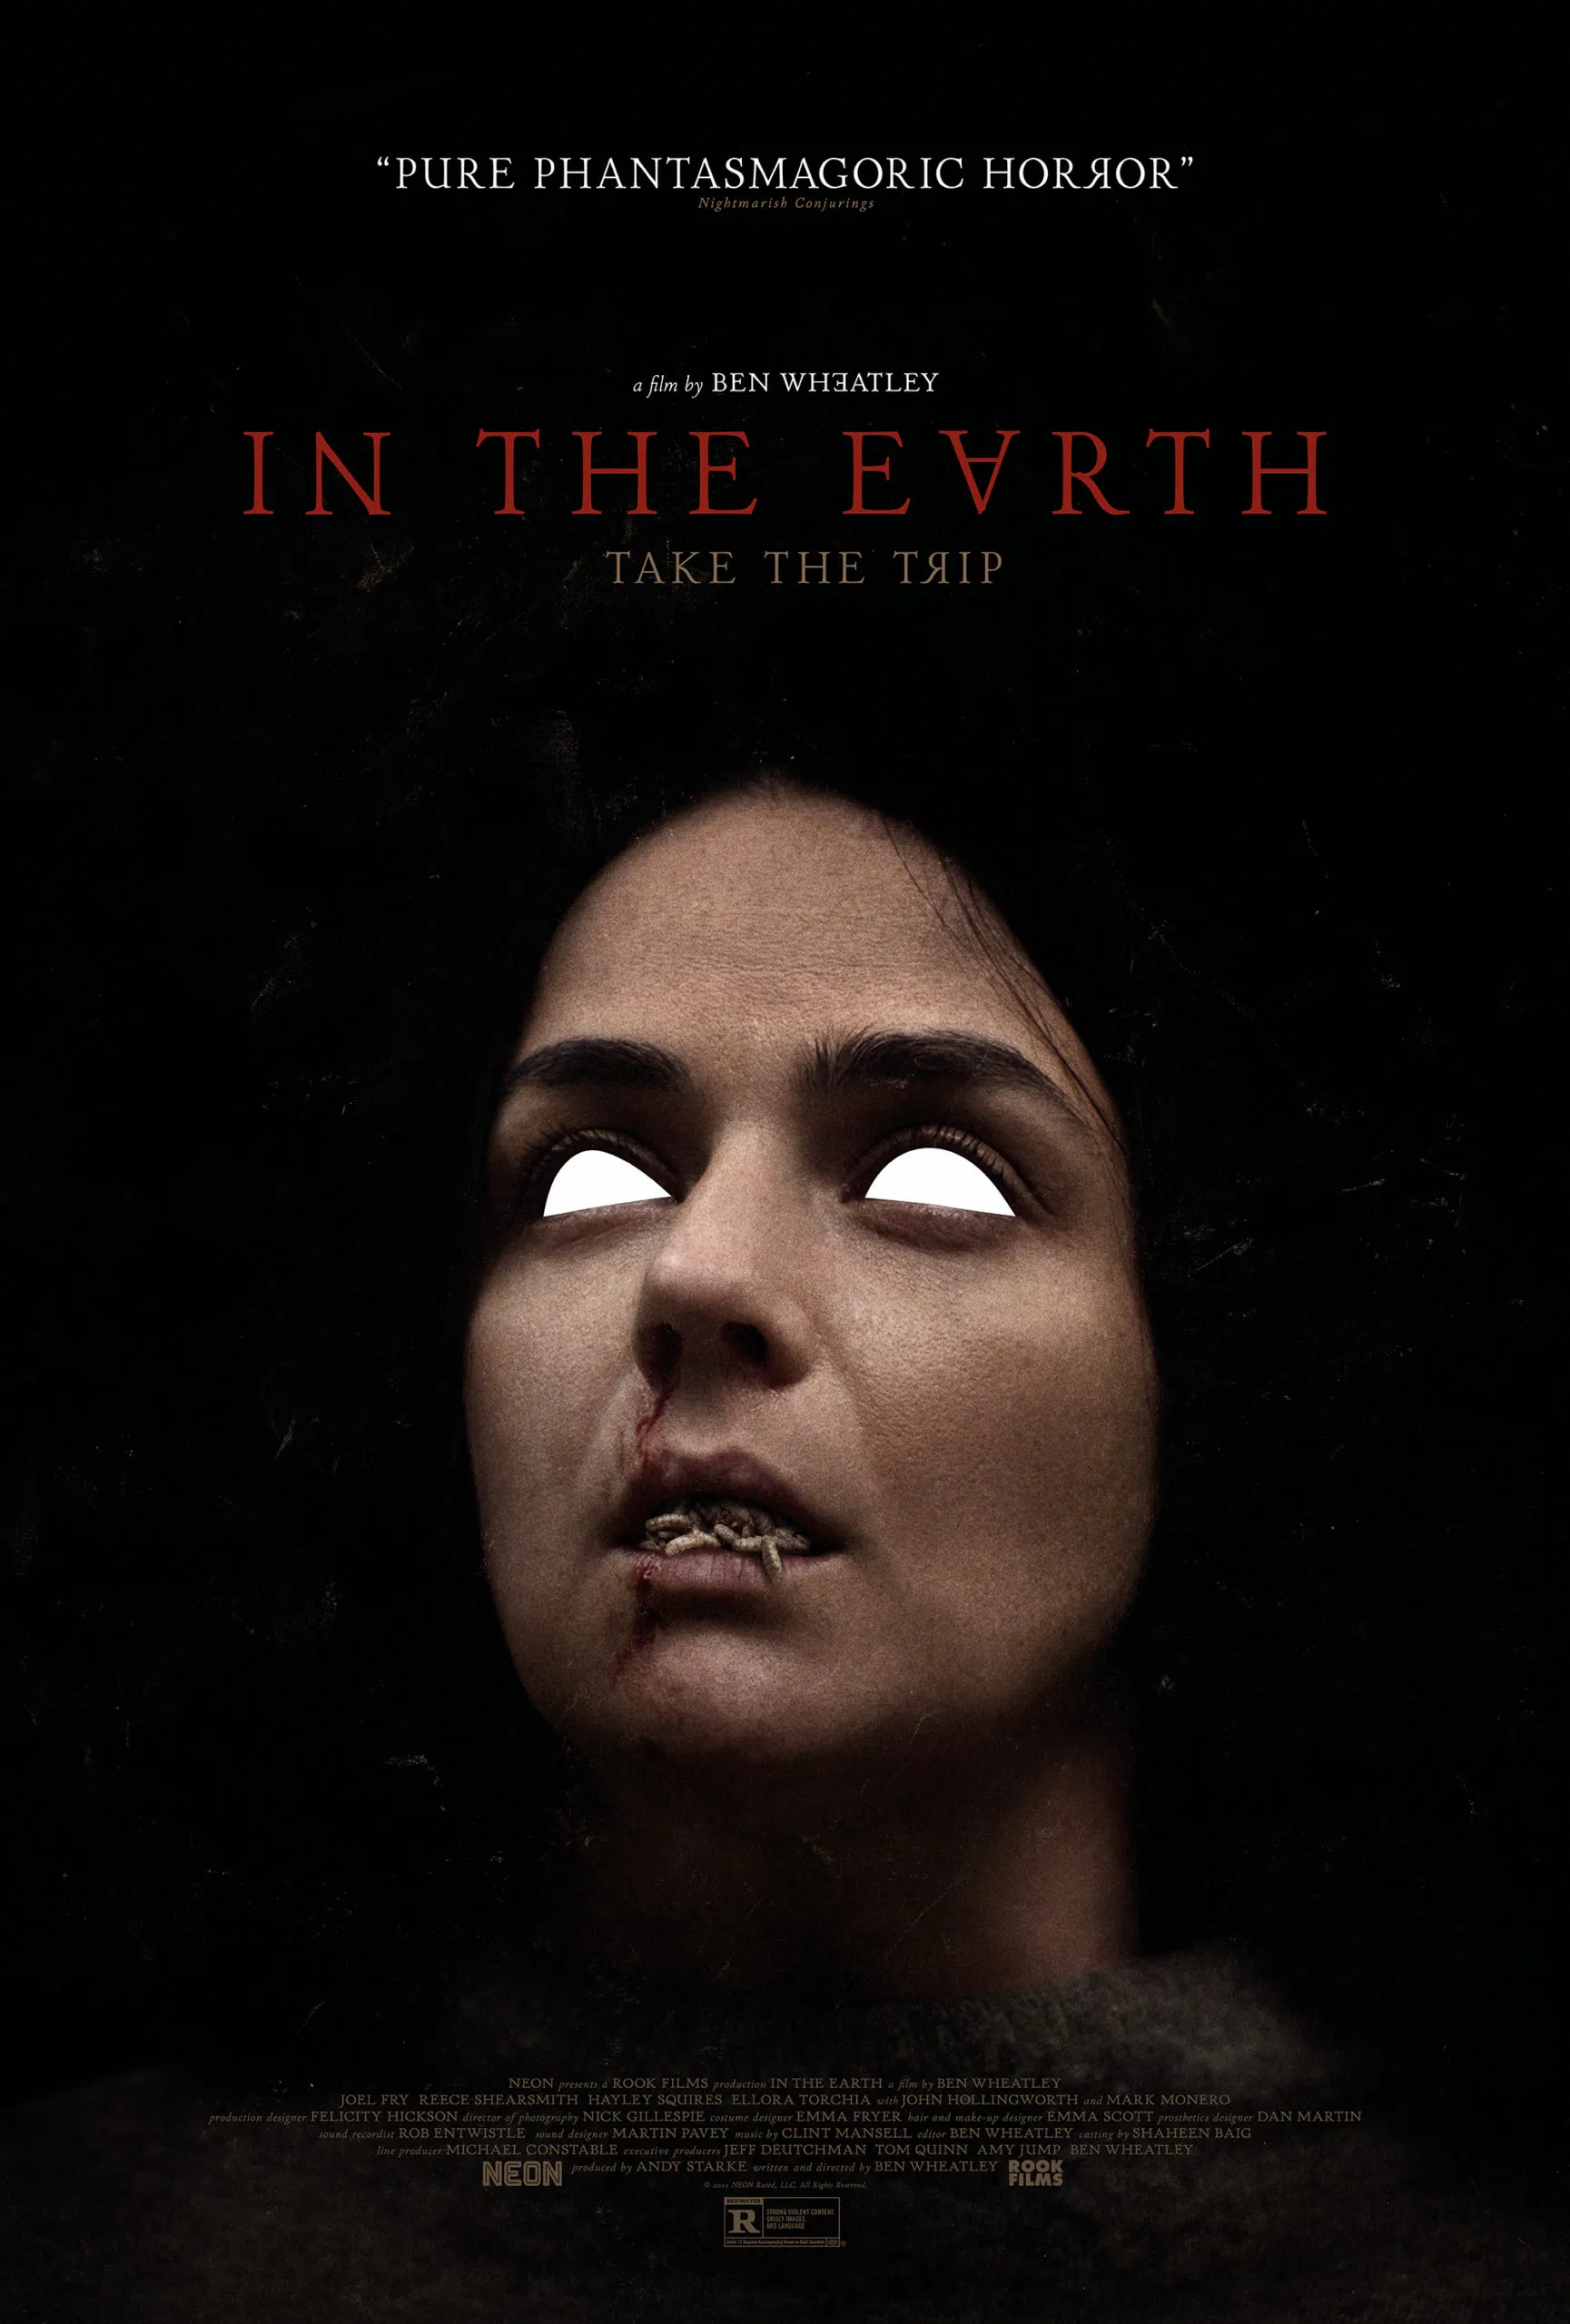 in-the-earth-poster-4-scaled.jpg